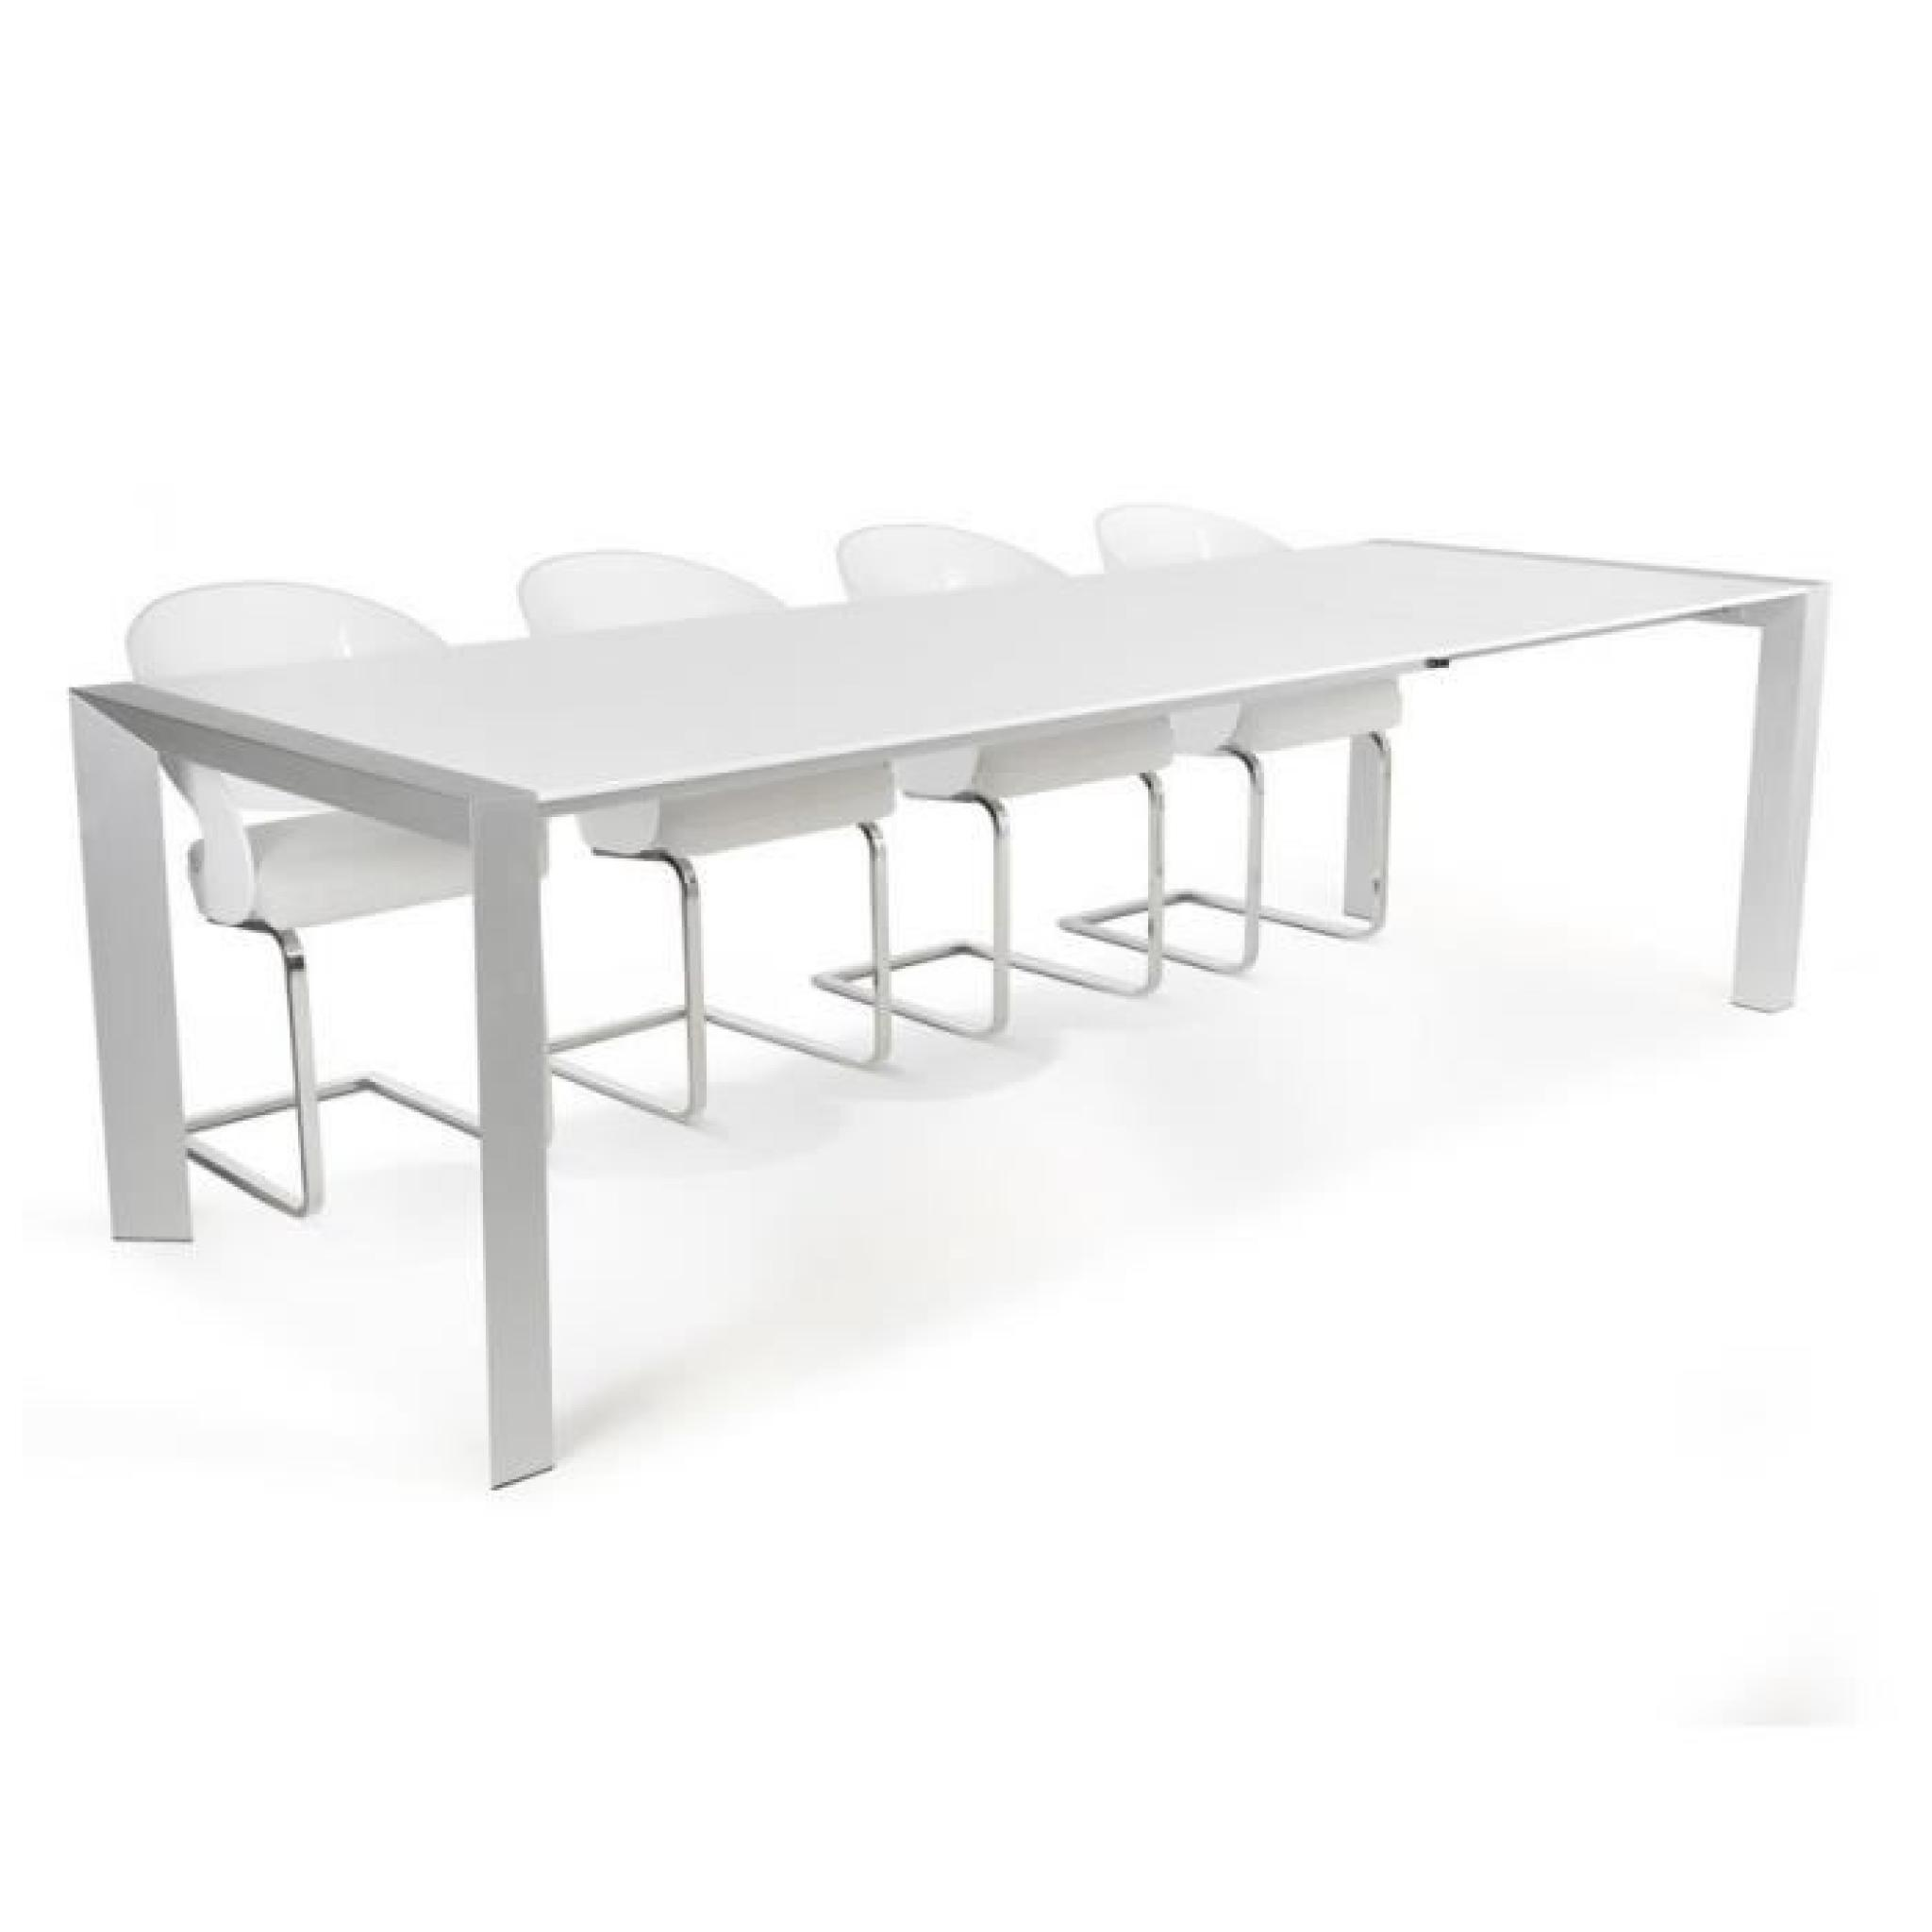 table d ner de r union extensible 39 pure 39 design blanche avec rallonges achat vente table. Black Bedroom Furniture Sets. Home Design Ideas